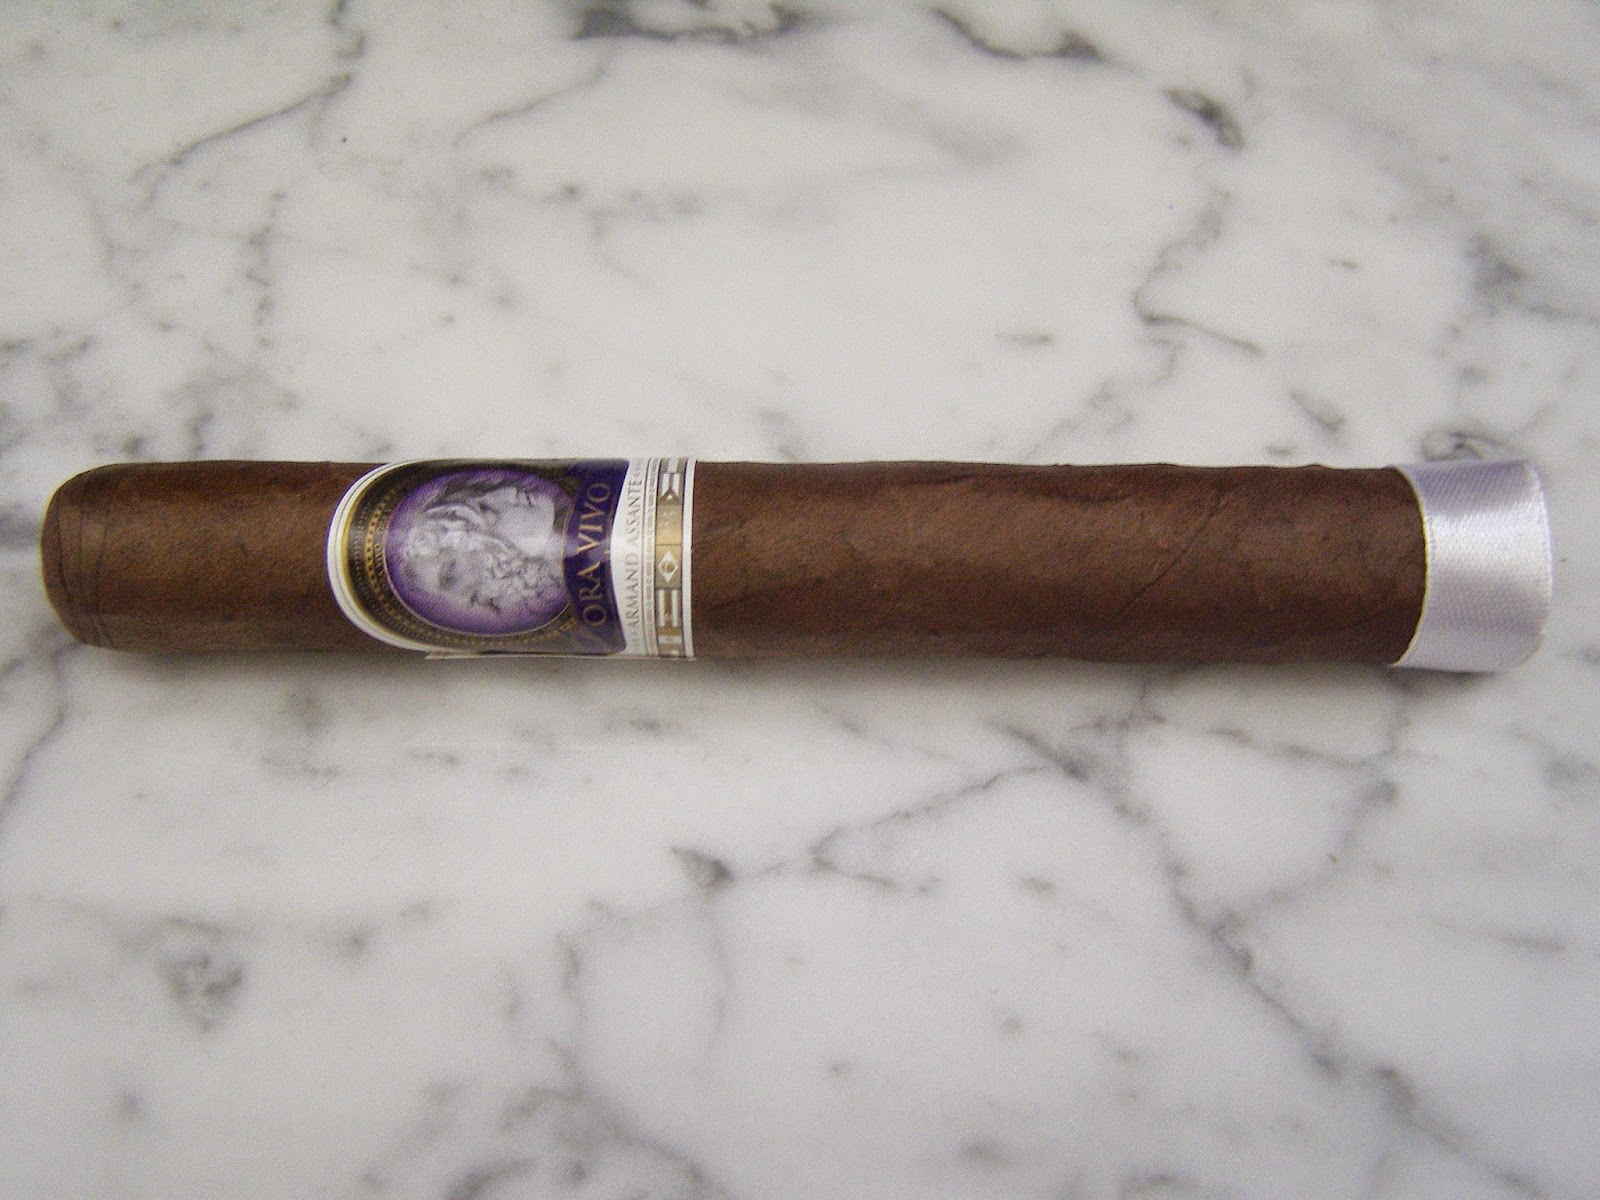 Cigar Review: Ora Vivo Armand Assante (European Edition) Genios by Legacy Brands